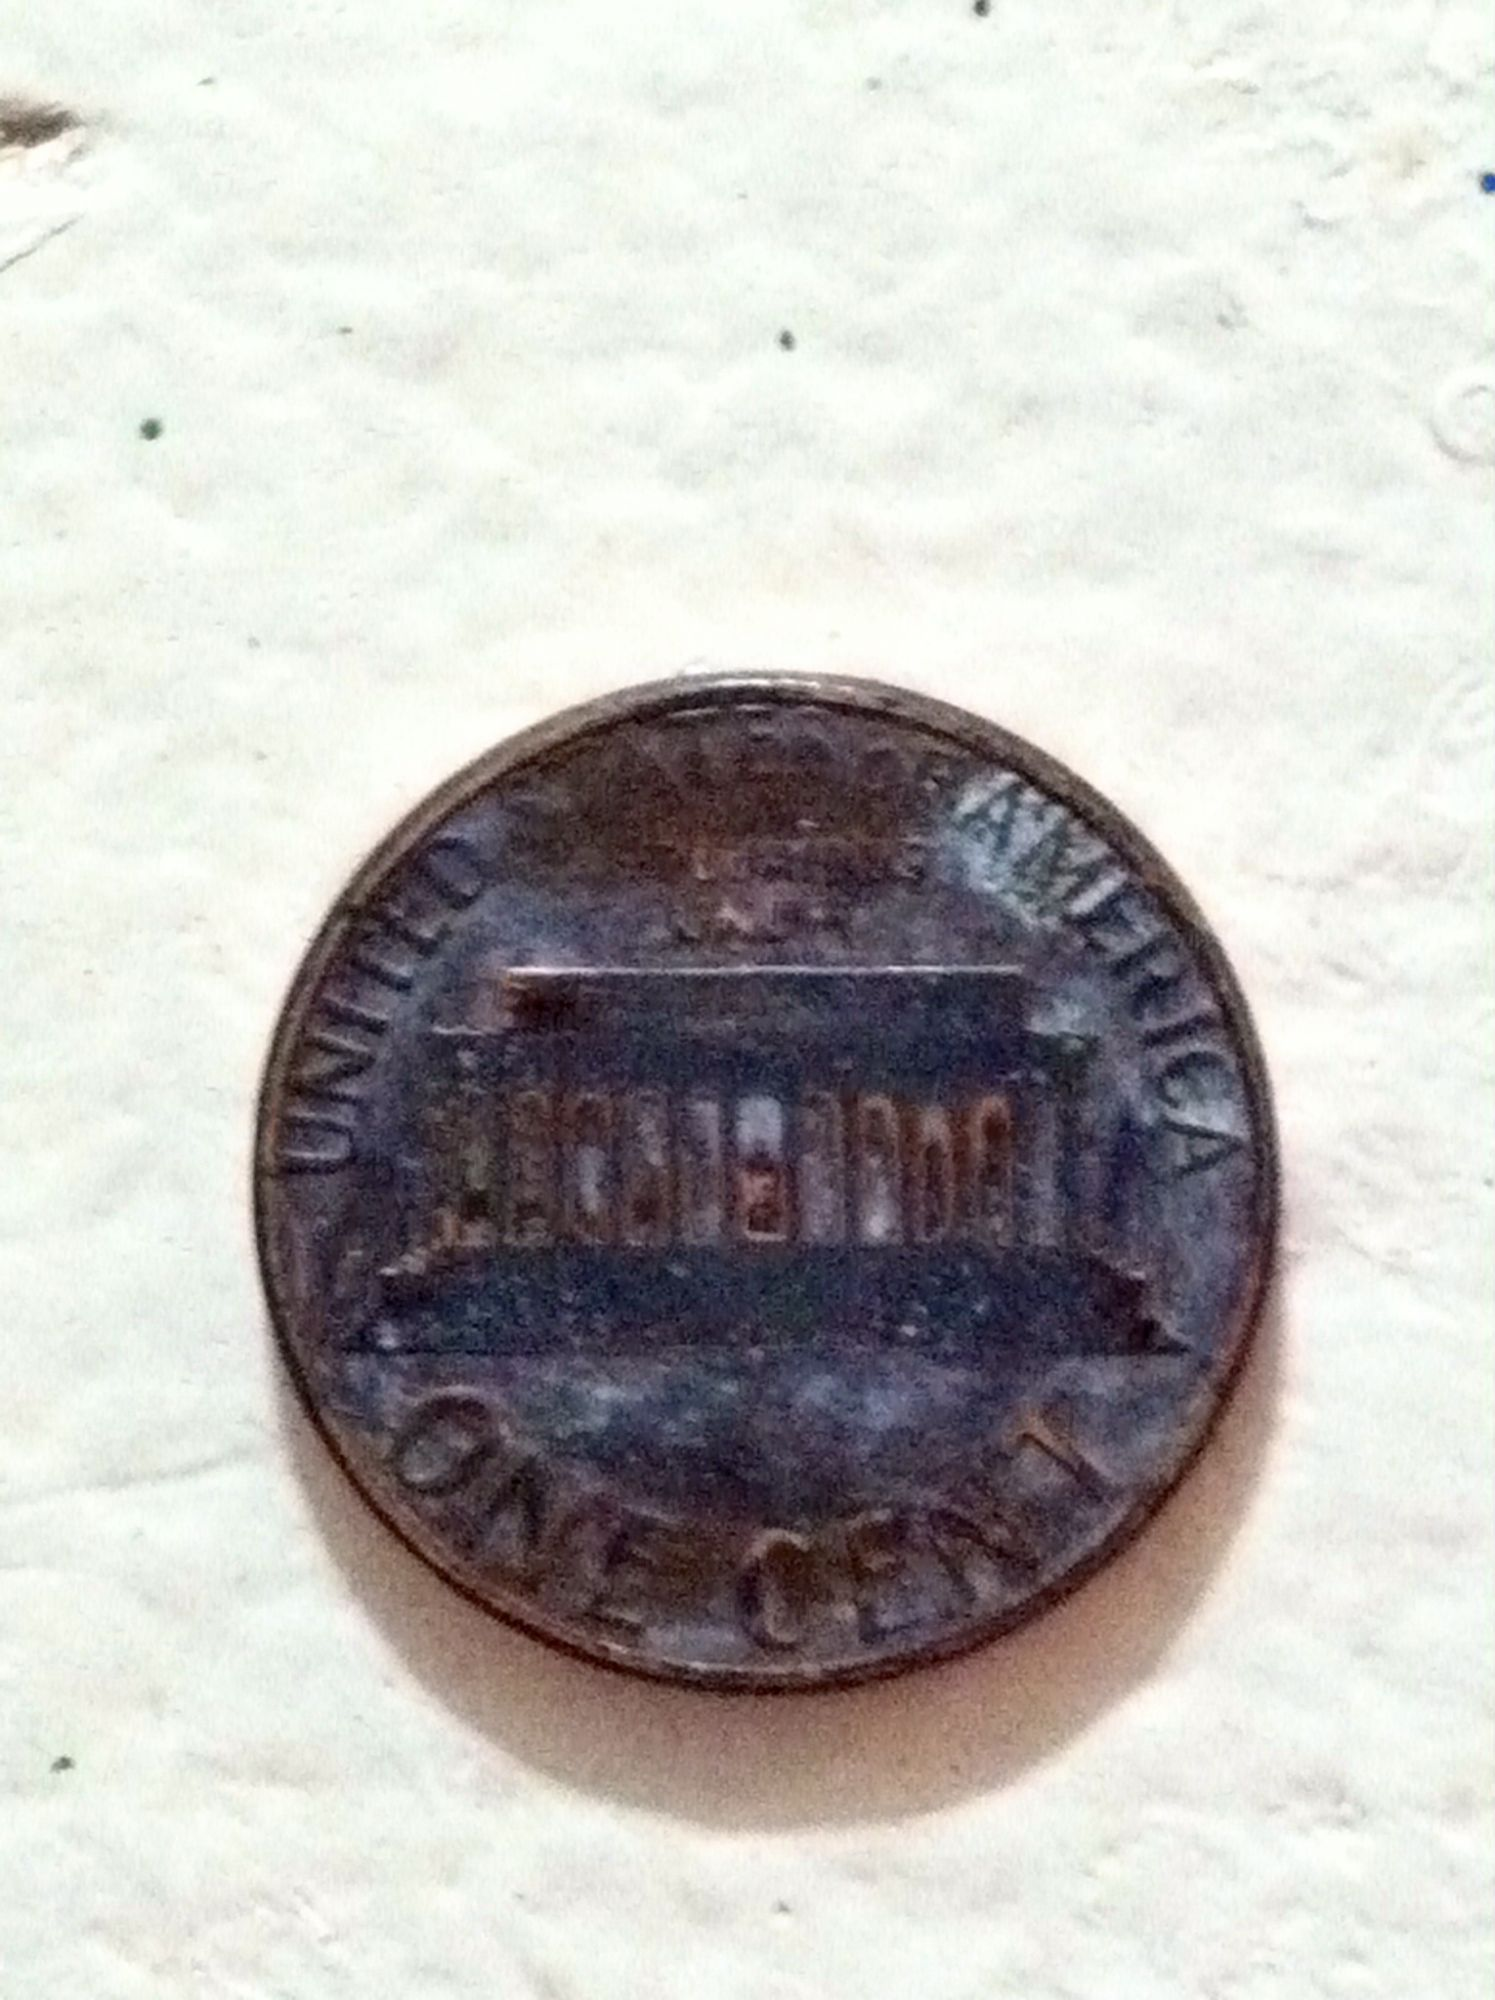 1983 d penny Planchet error? - Newbie Coin Collecting